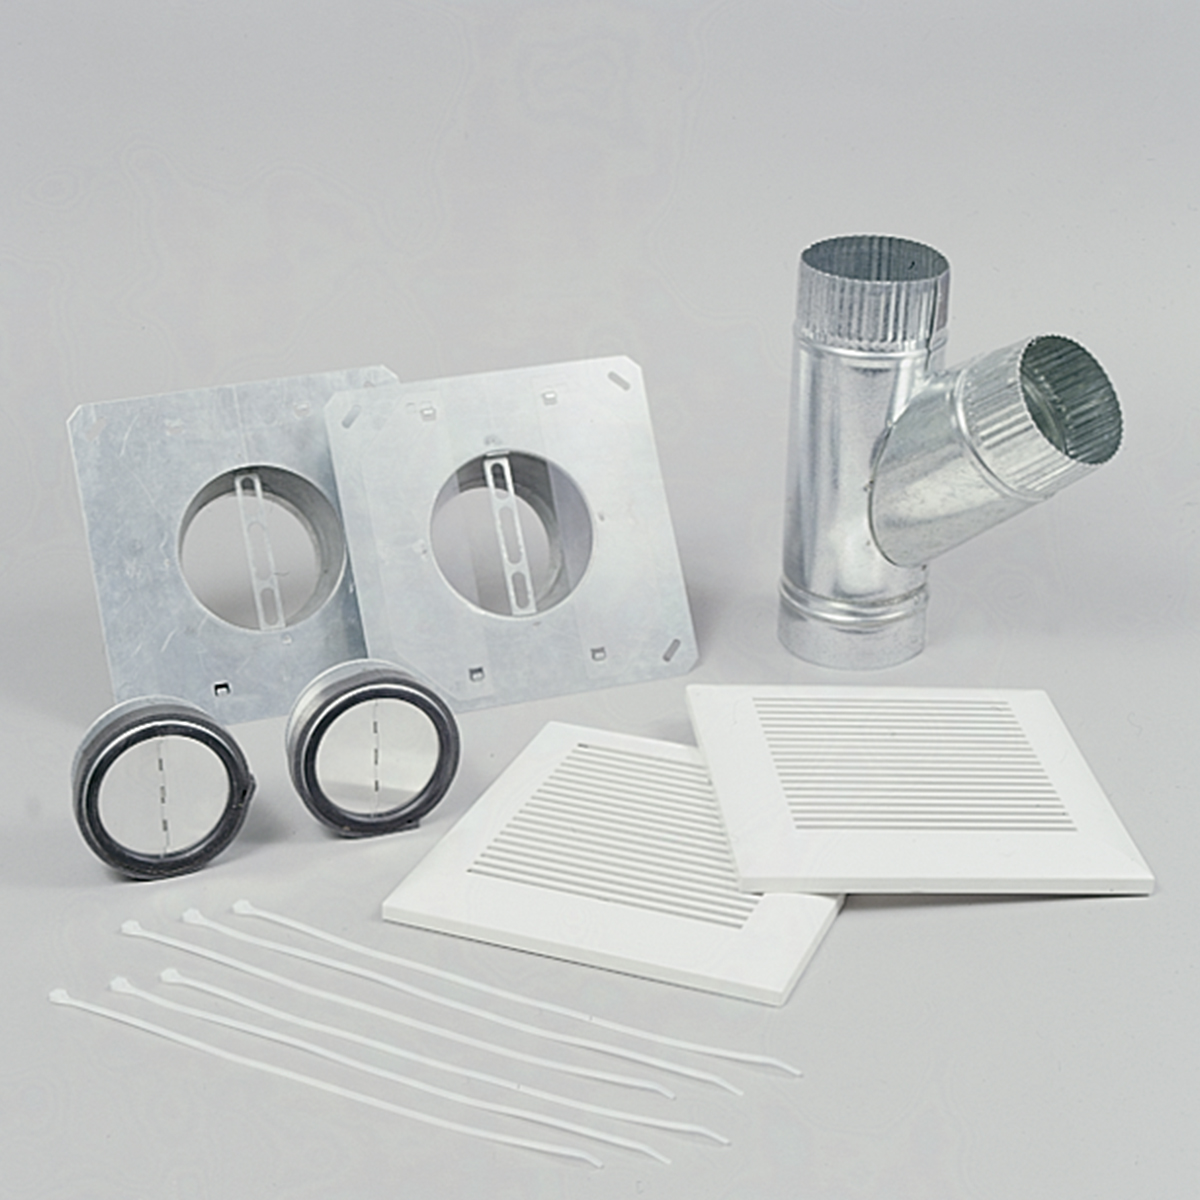 """WhisperLine Installation Kit, Double Inlet Kit for 6"""" Ducts, Designed Exclusively for WhisperLine Ventilation Fans"""